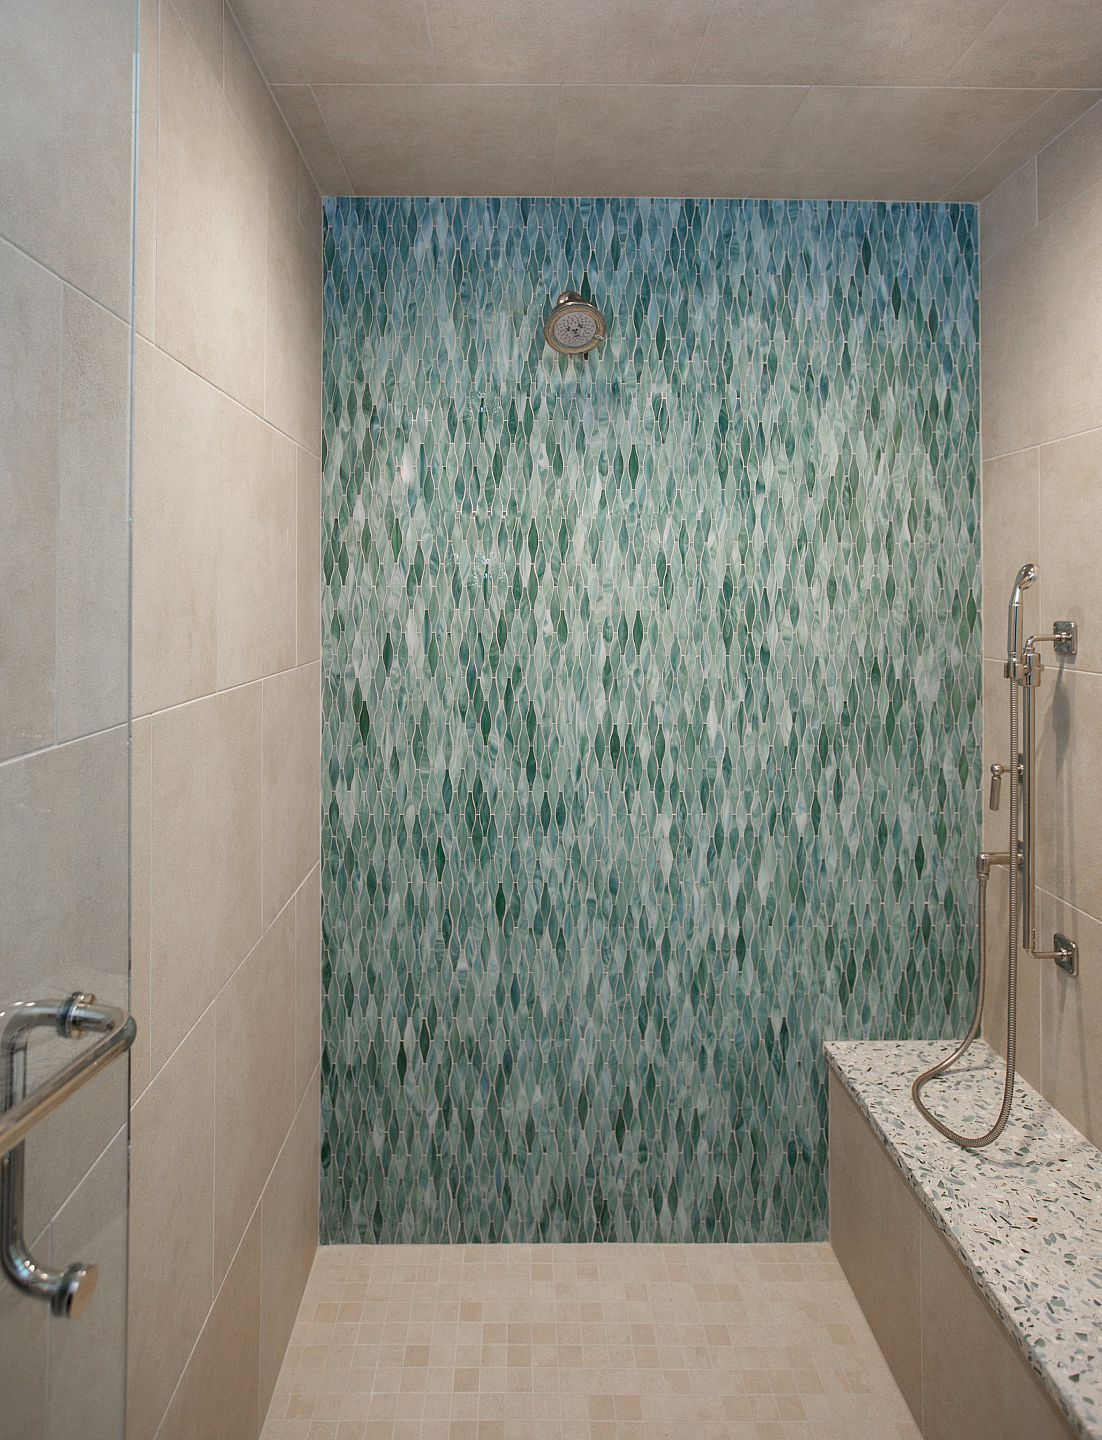 Waterfall Showers Designs Amanda Webster Design Nautical Beach Condo Interior